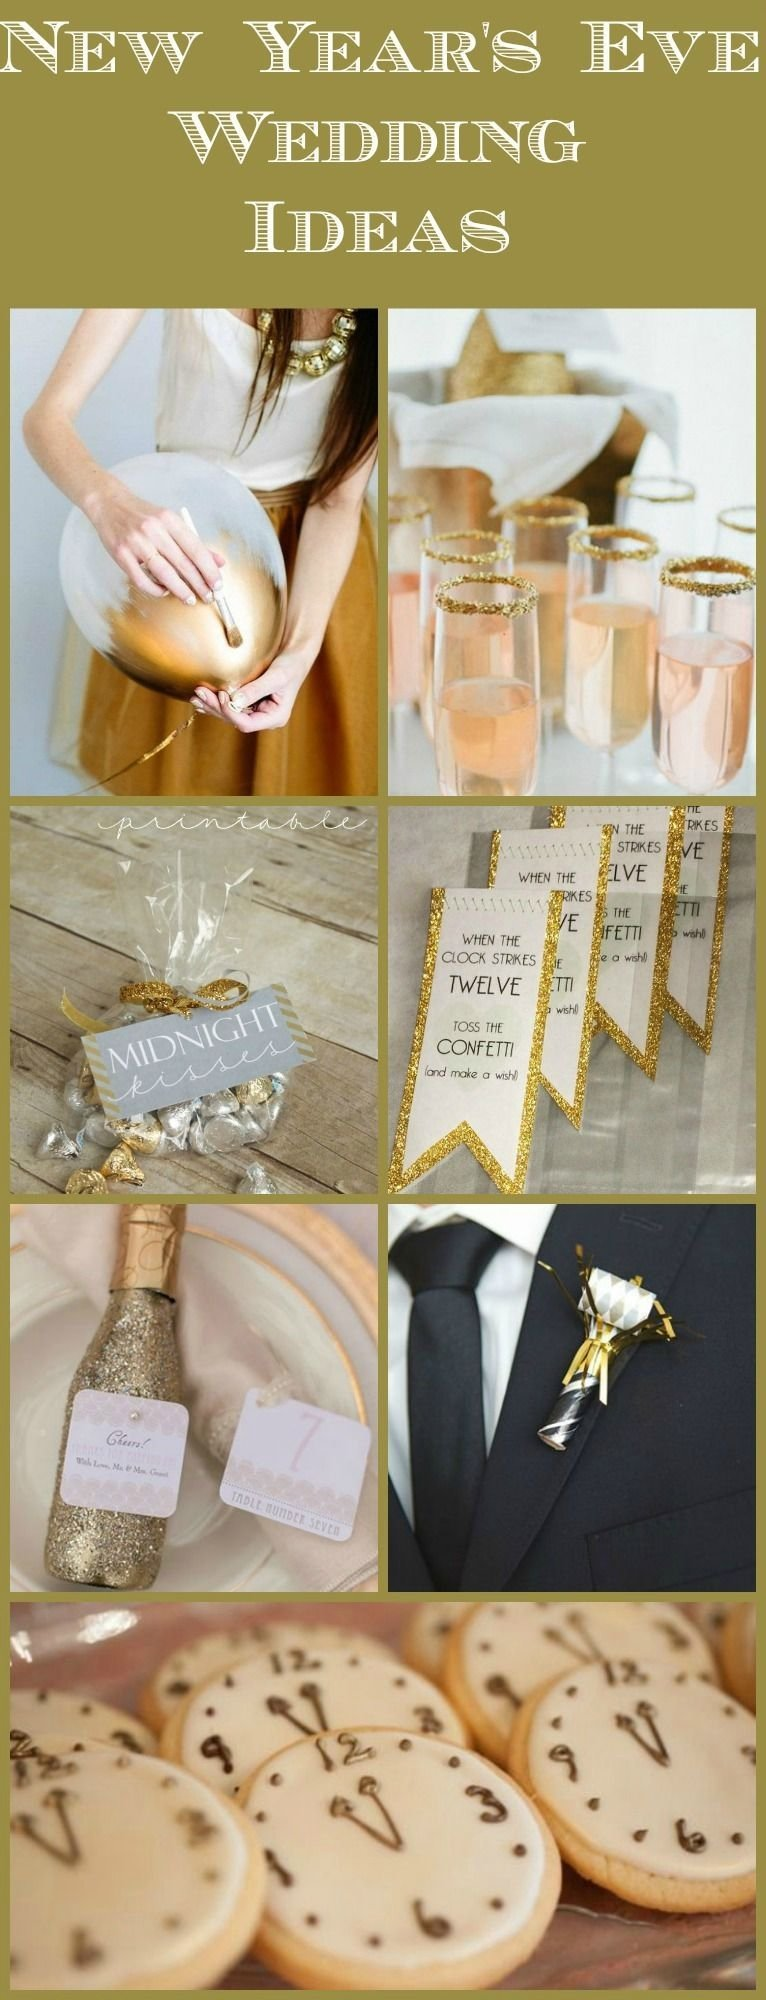 10 Attractive New Years Eve Wedding Ideas 10 new years wedding ideas rustic wedding chic 2020